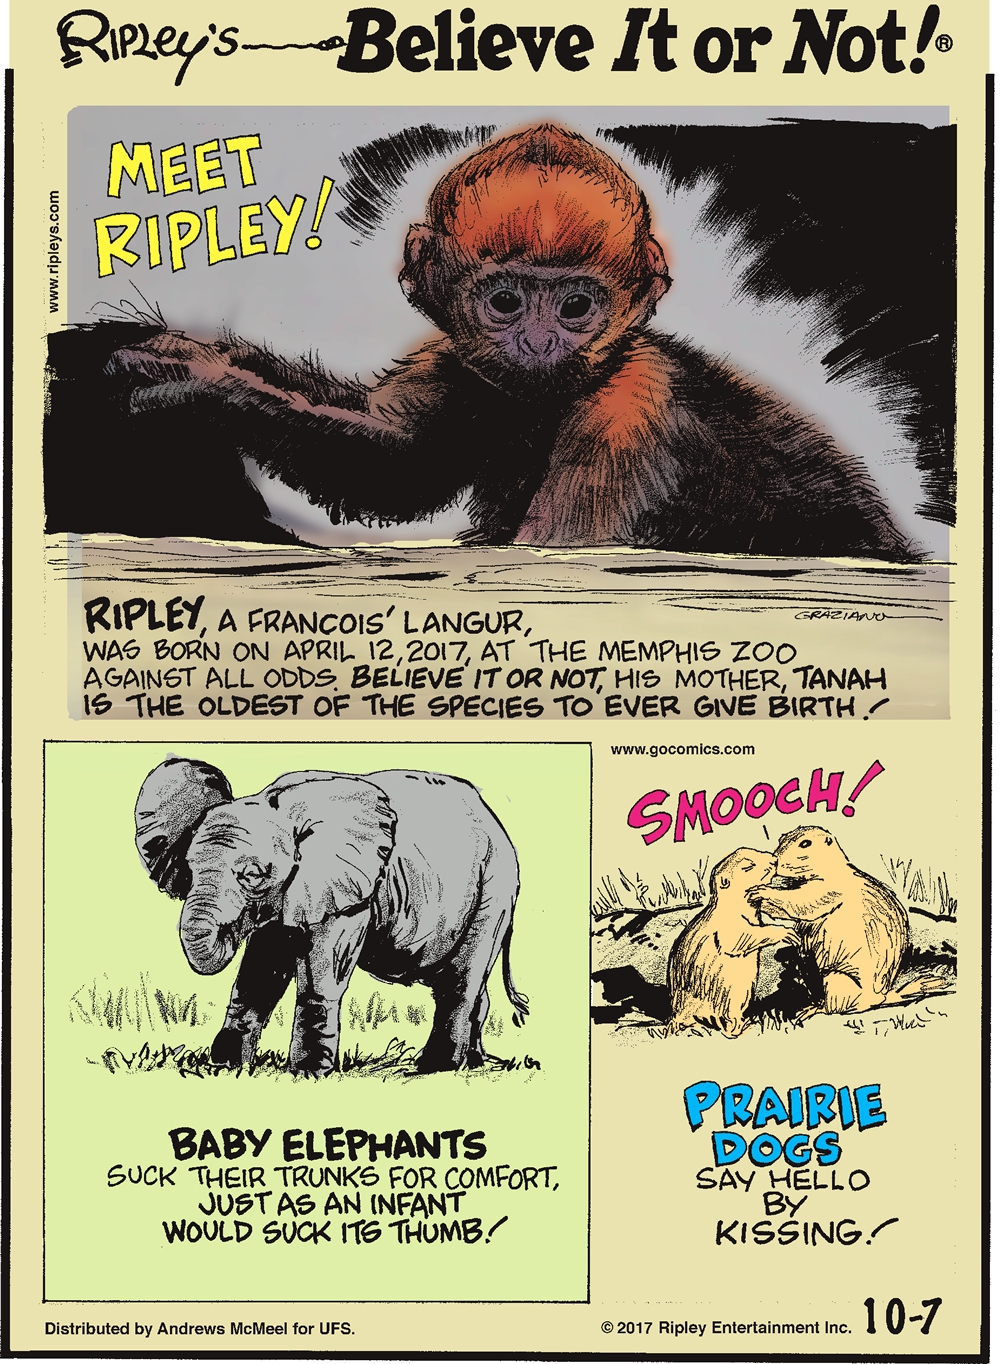 Ripley, a Francois' Langur, was born on April 12, 2017, at the Memphis Zoo against all odds. Believe it or not, his mother, Tanah is the oldest of the species to ever give birth!-------------------- Baby elephants suck their trunks for comfort, just as an infant would suck its thumb!-------------------- Prairie dogs say hello by kissing!